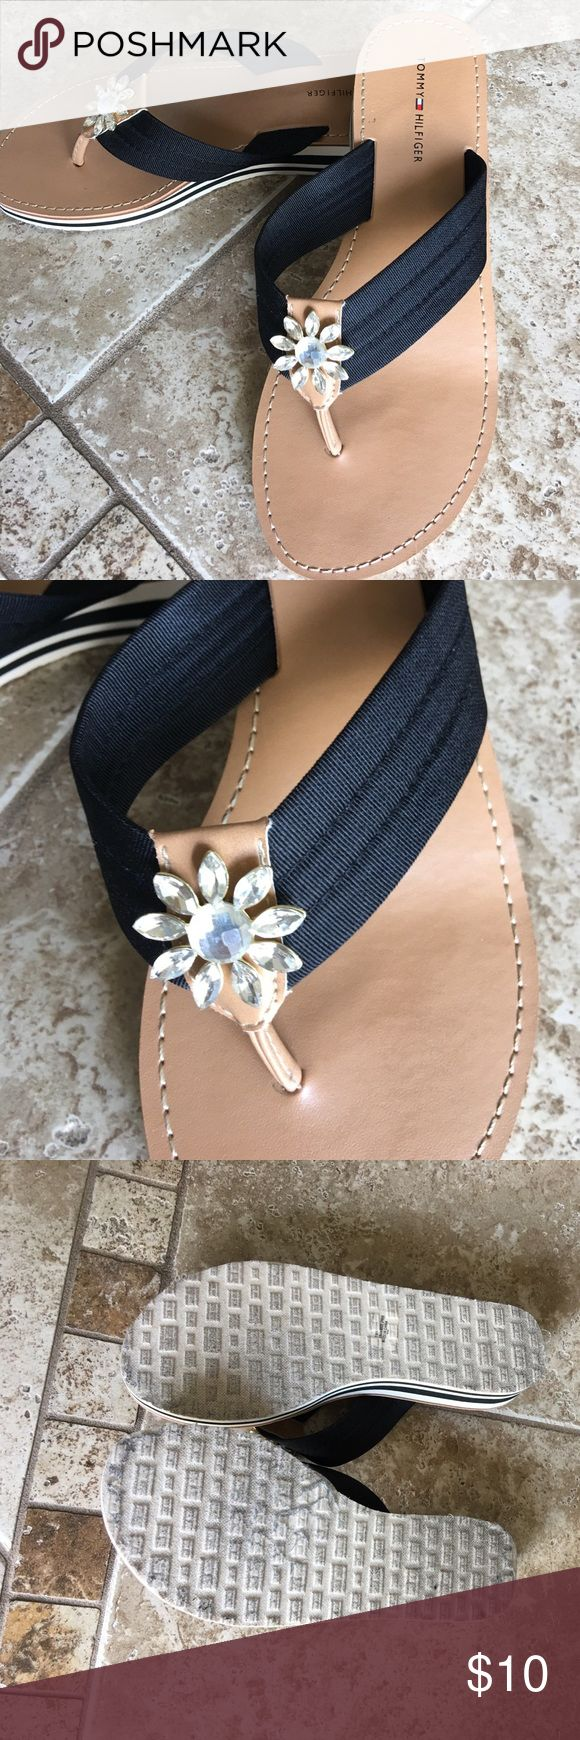 Tommy Hilfiger sandals Like new worn once Tommy Hilfiger sandal with crystal at top for a dressy casual look , very cute sandal for summer Tommy Hilfiger Shoes Sandals